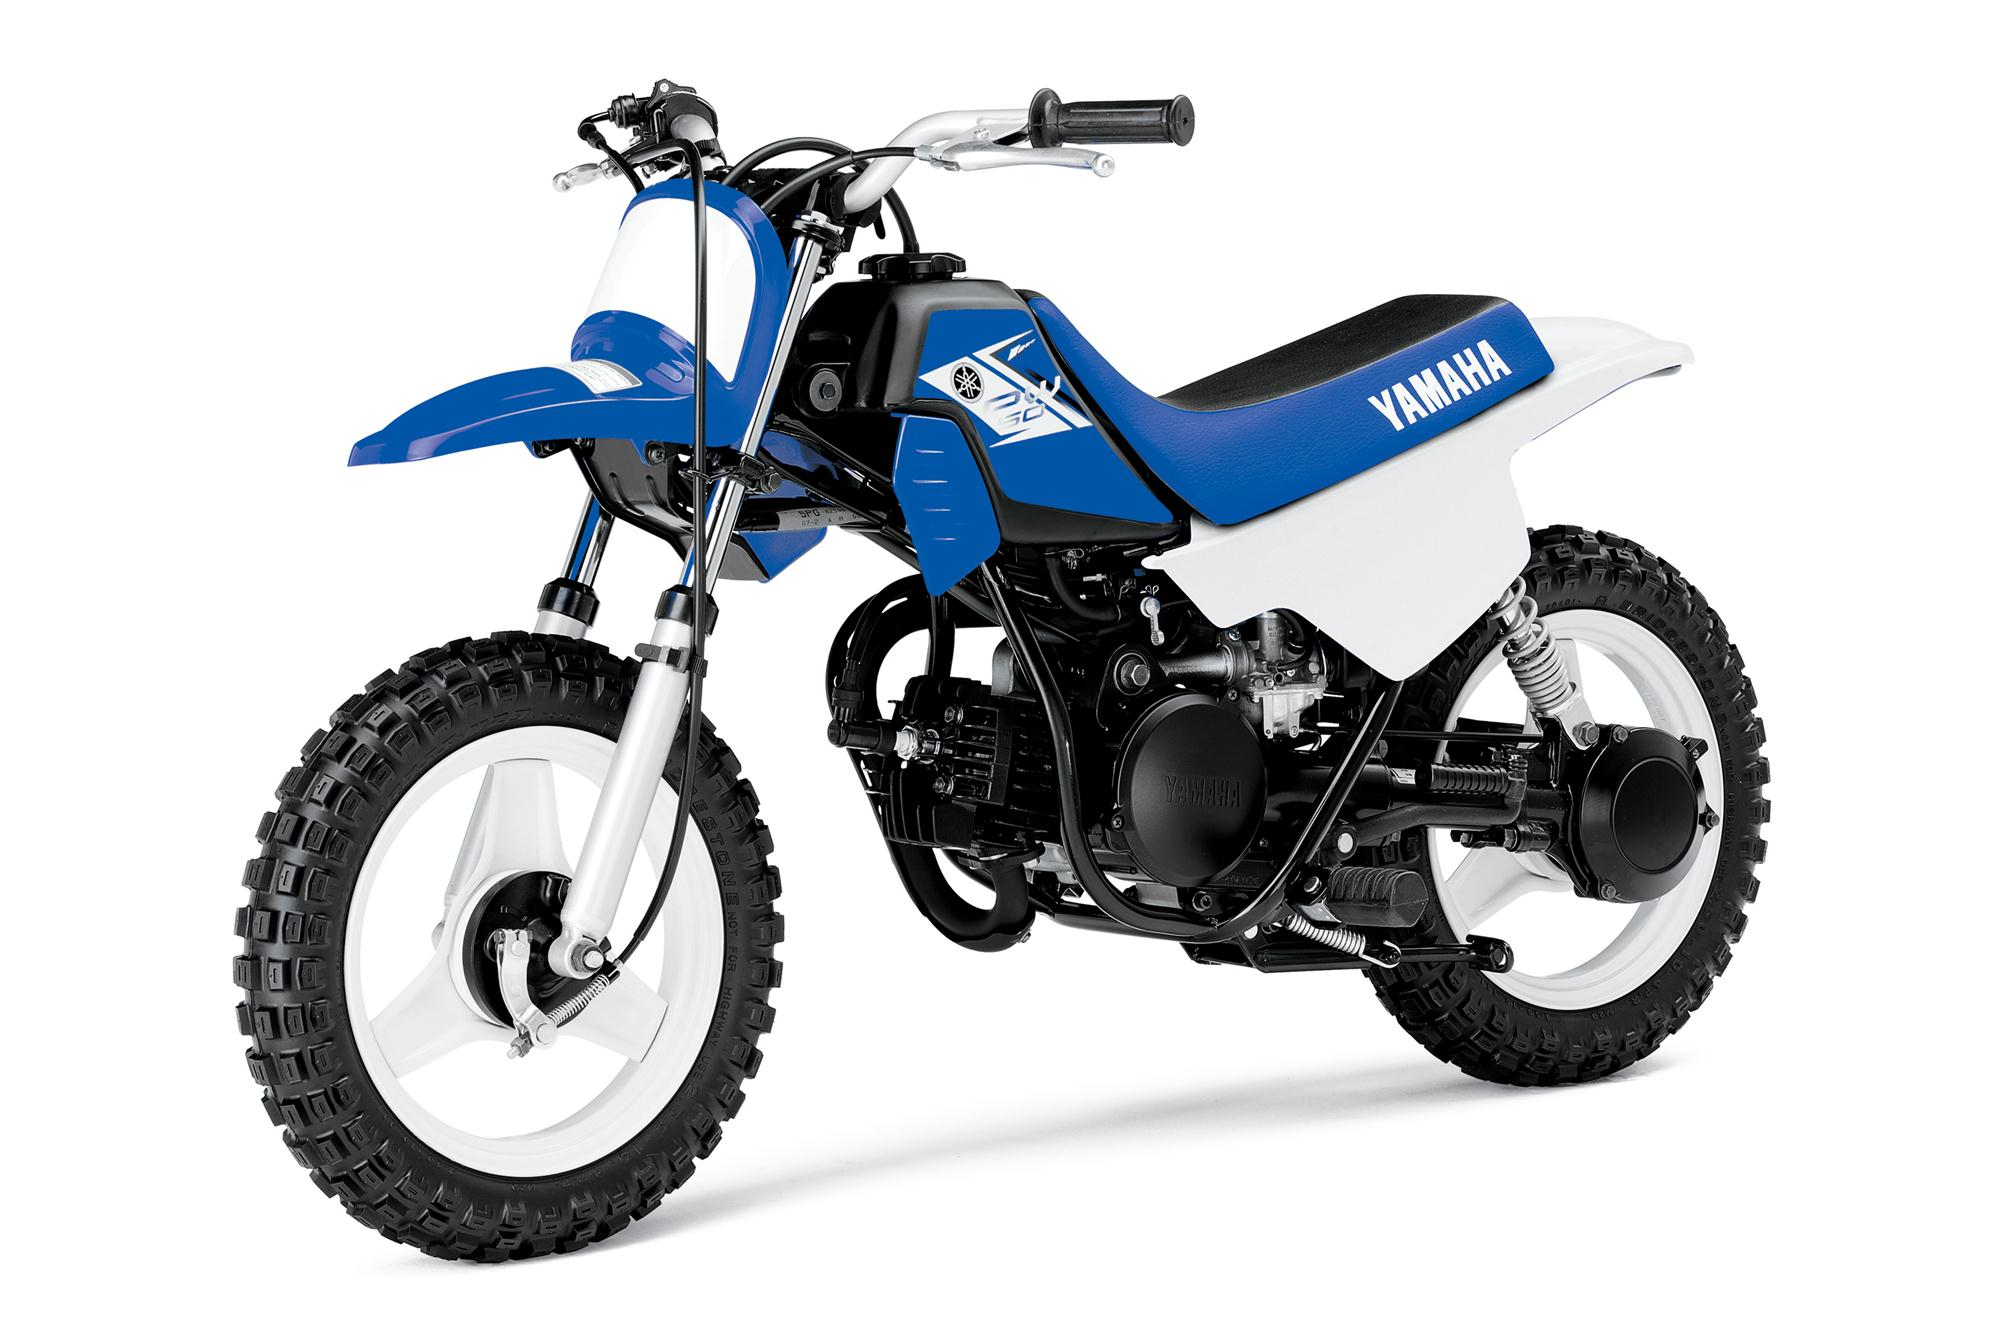 yamaha pw50 specs 2012 2013 autoevolution. Black Bedroom Furniture Sets. Home Design Ideas